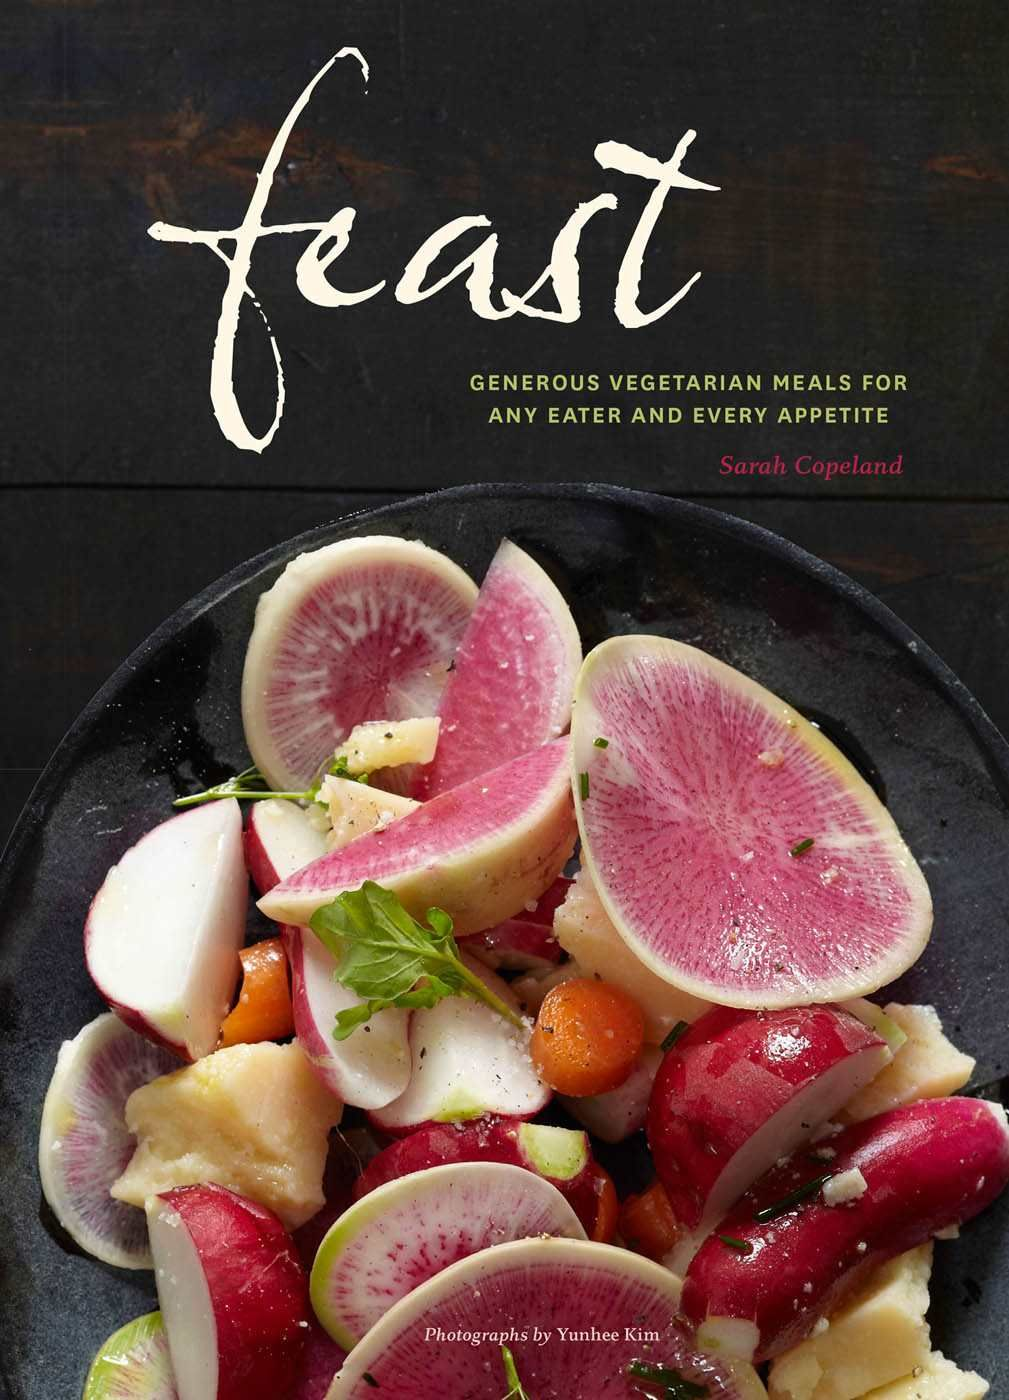 Amazon.com: Feast: Generous Vegetarian Meals for Any Eater and Every Appetite eBook: Sarah Copeland, Yunhee Kim: Kindle Store